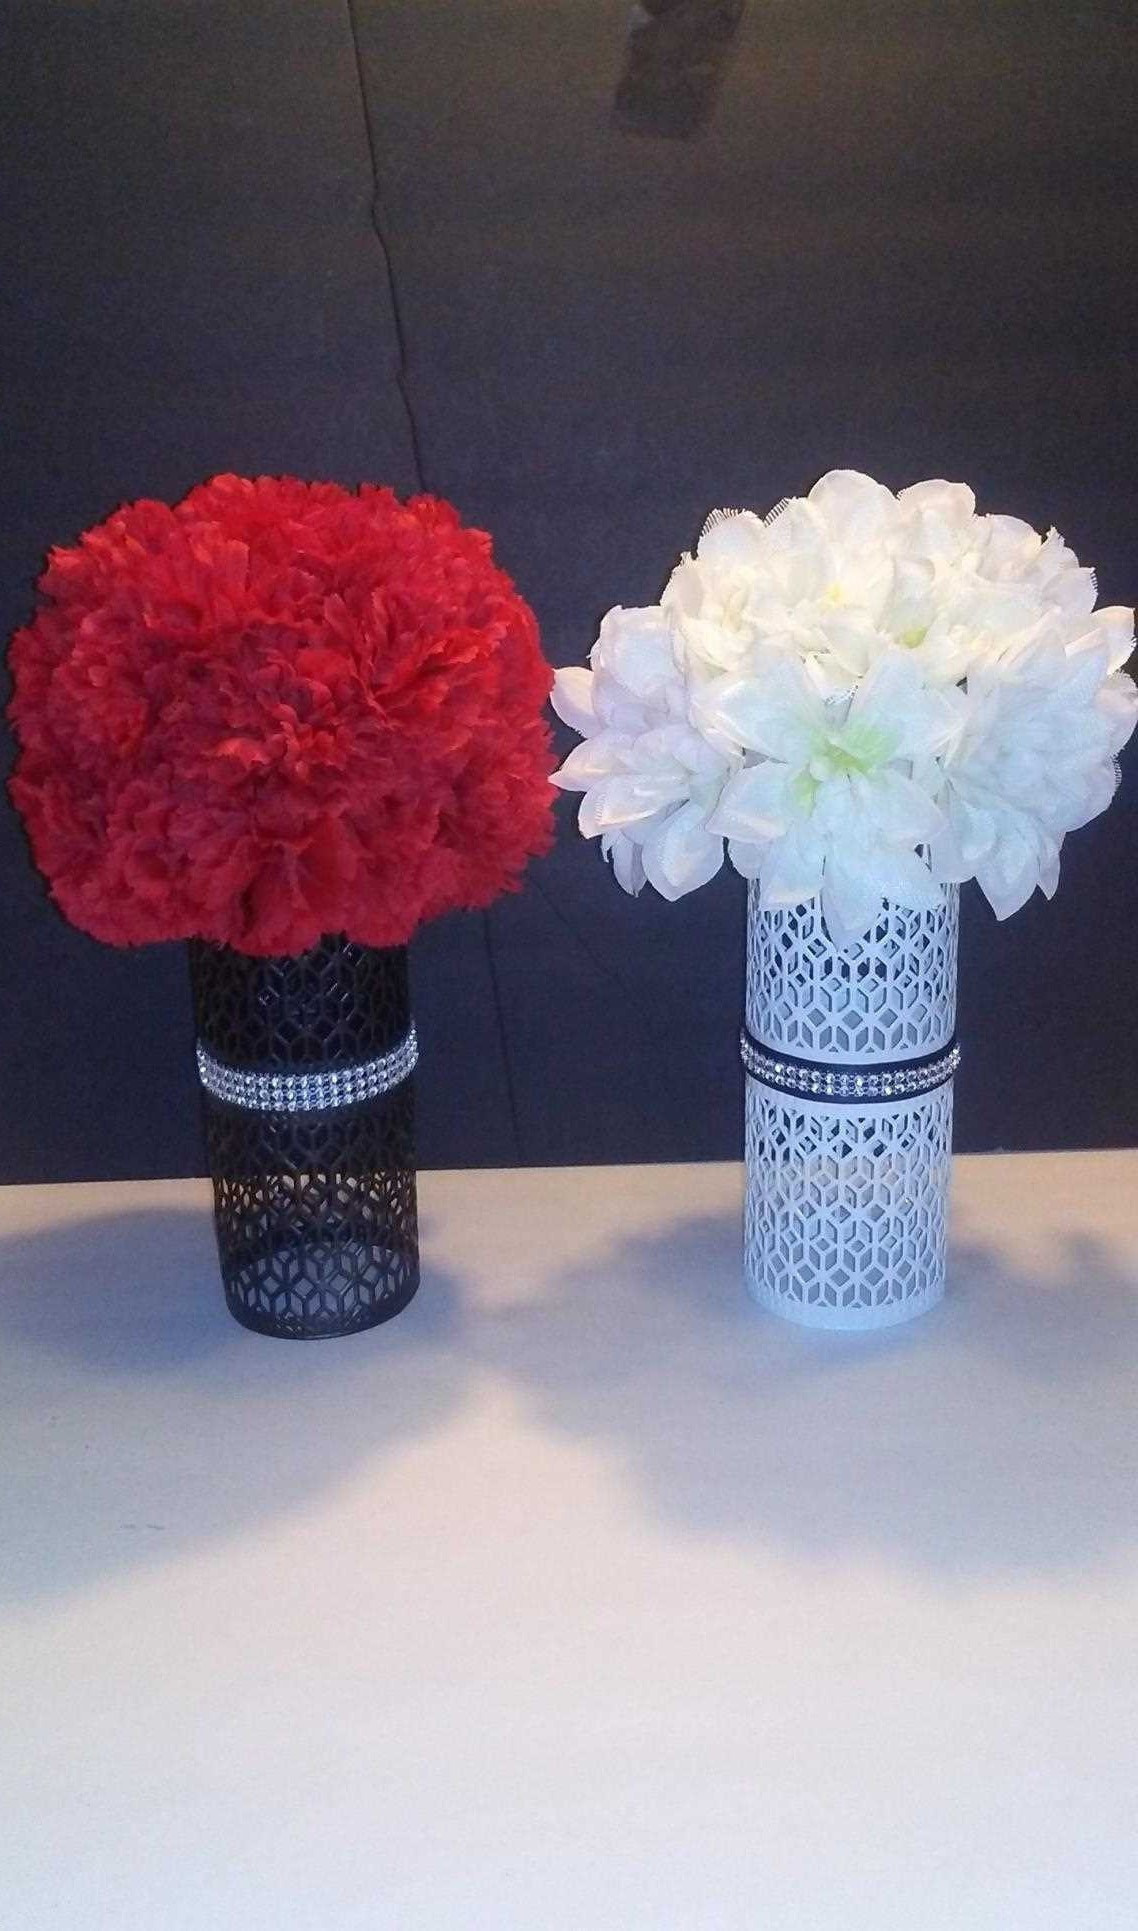 17 Great Tall Plastic Vases for Centerpieces